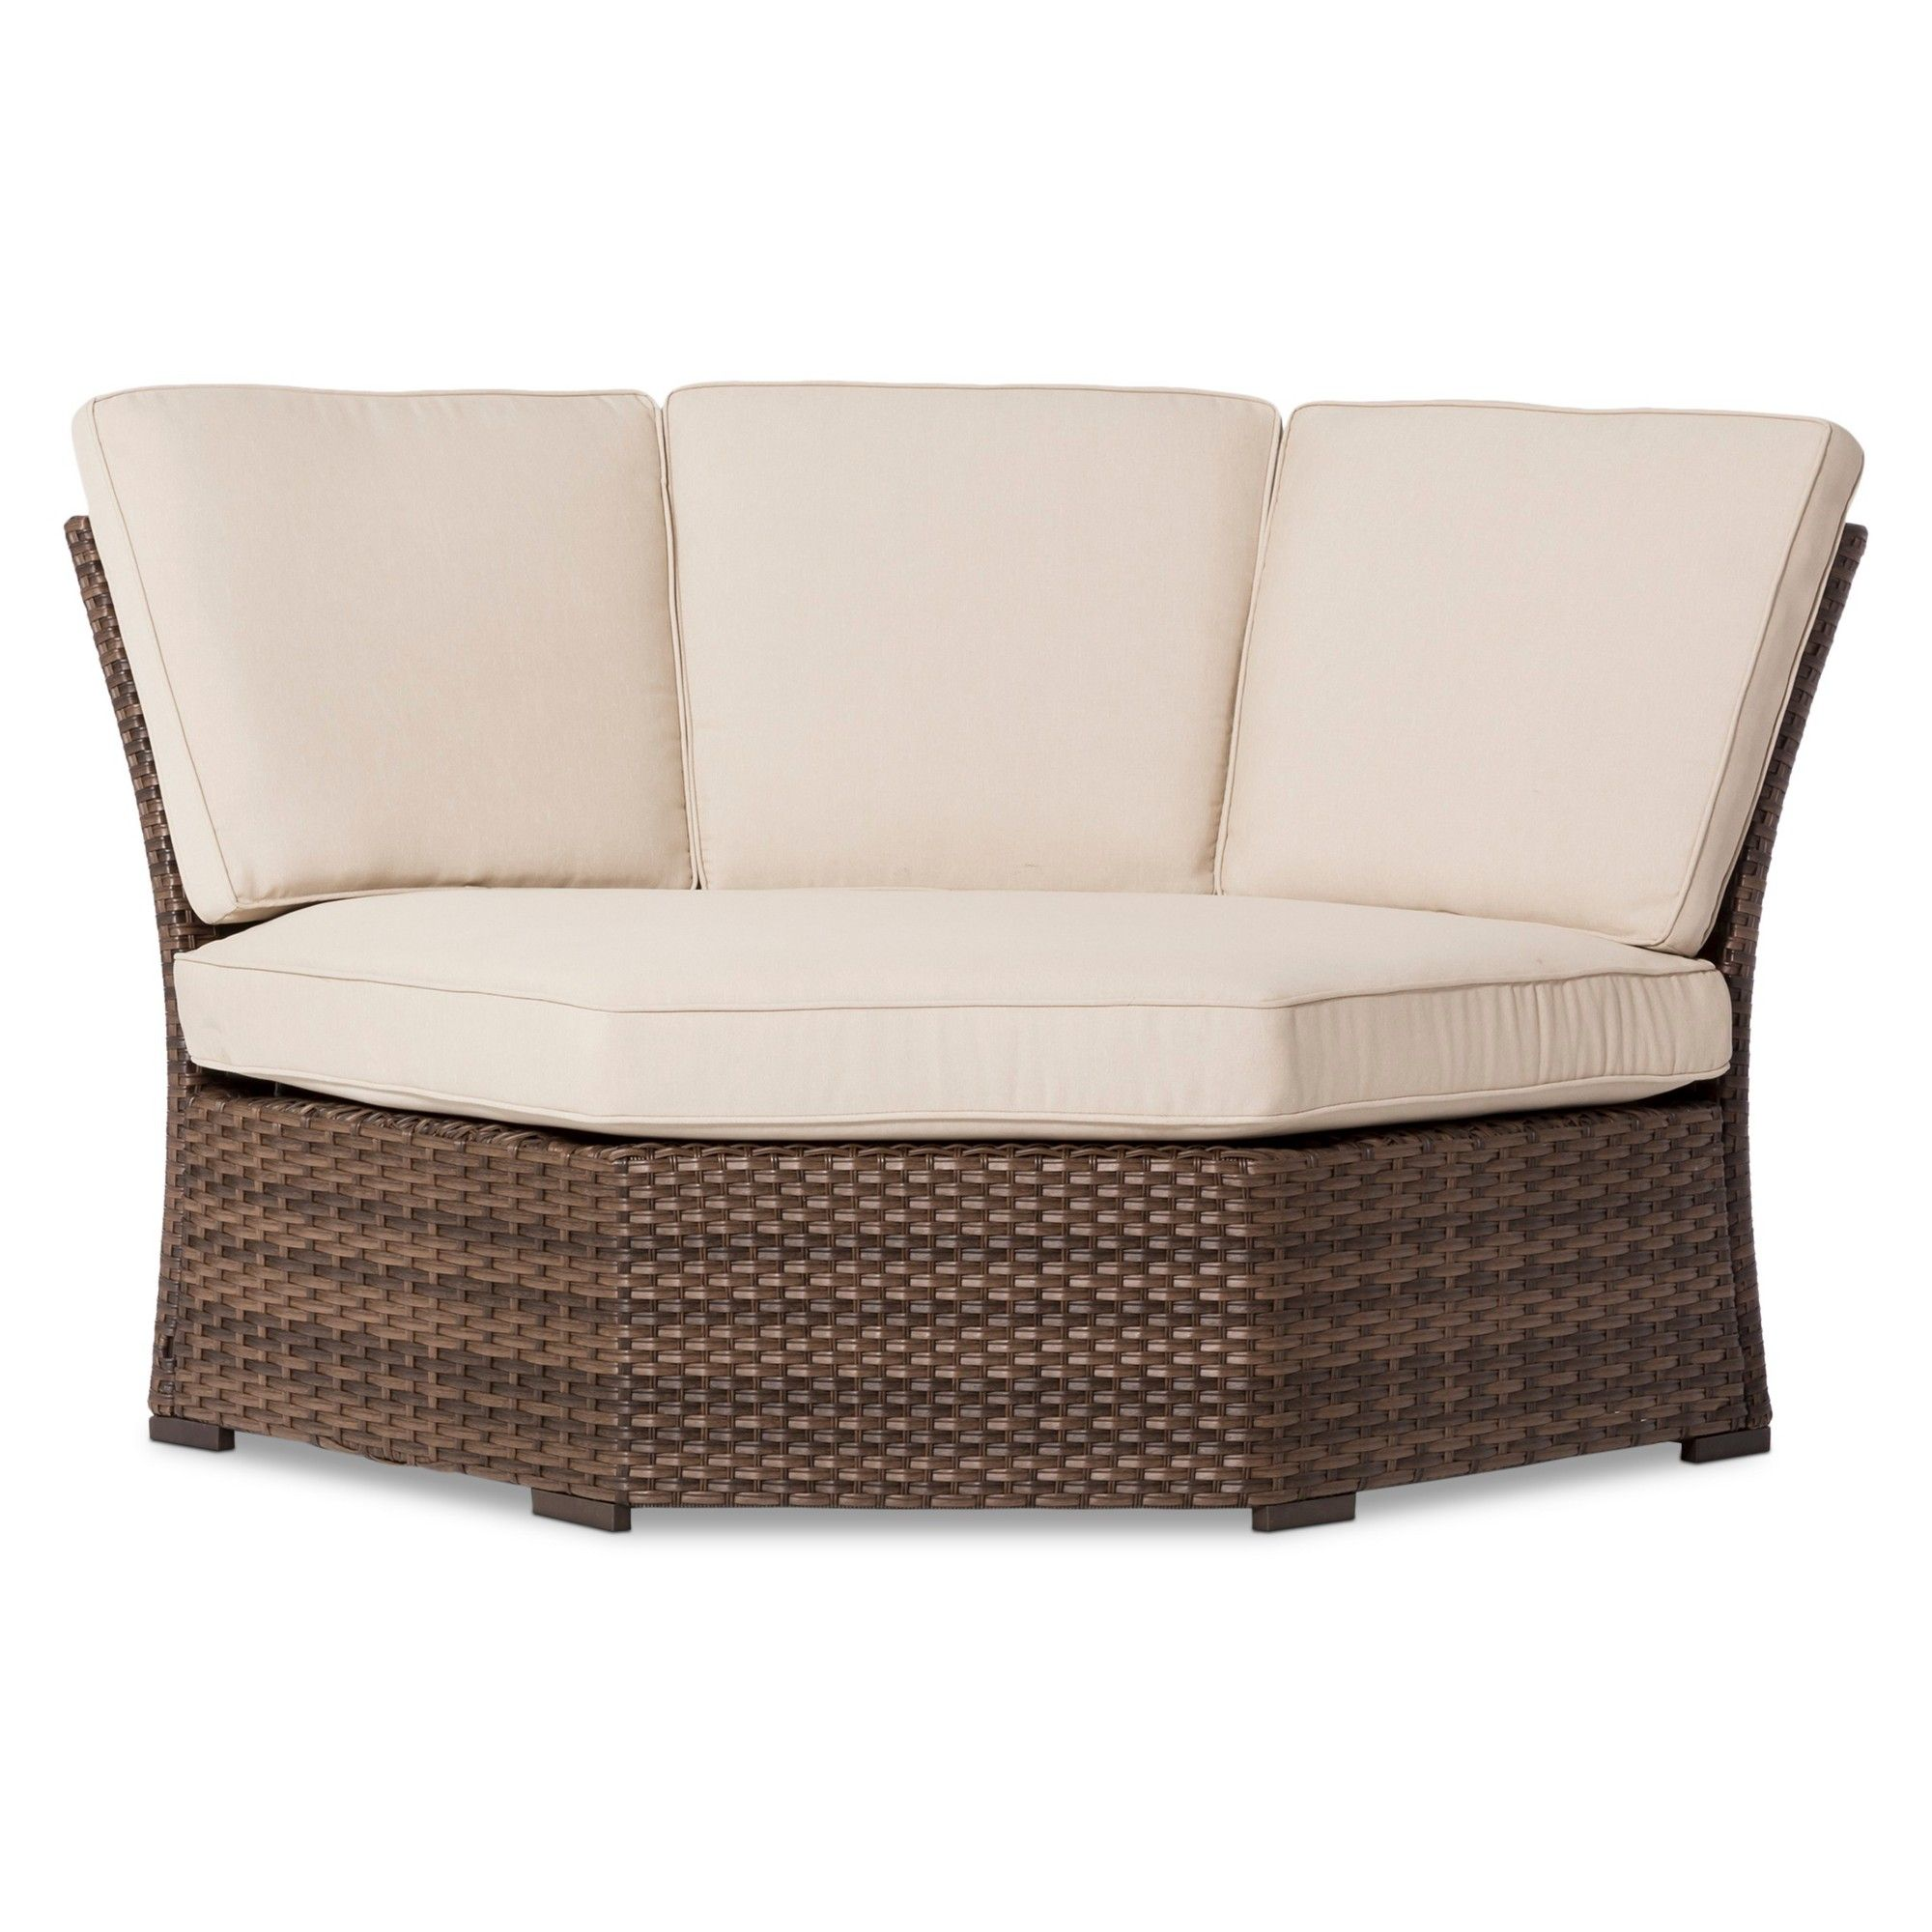 Halsted wicker patio corner sectional seat tan threshold